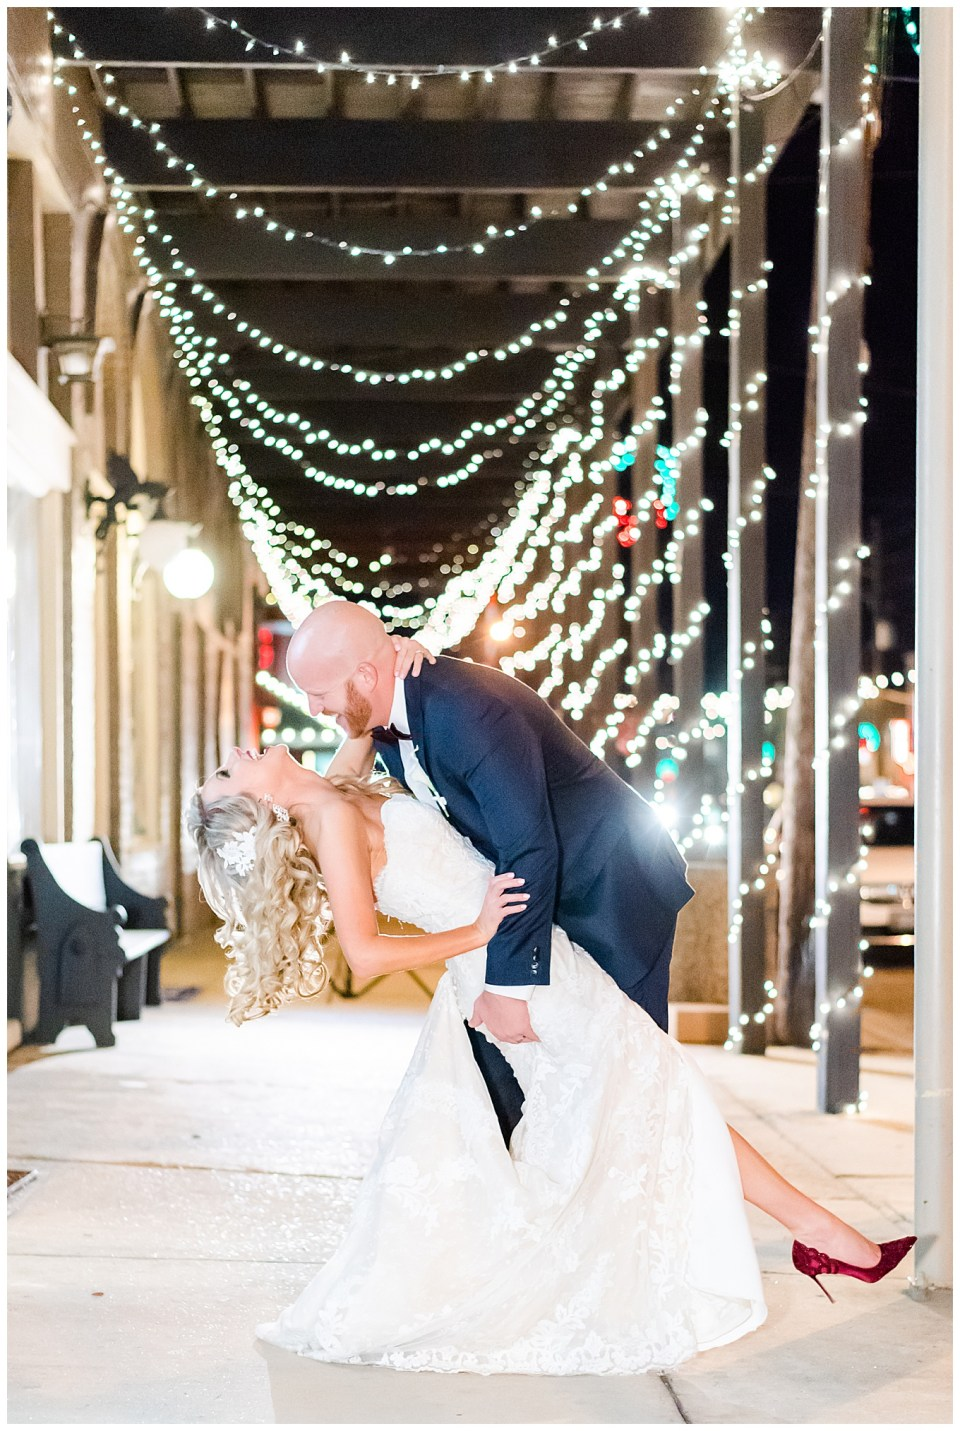 couple on wedding day on a sidewalk with string lights behind them